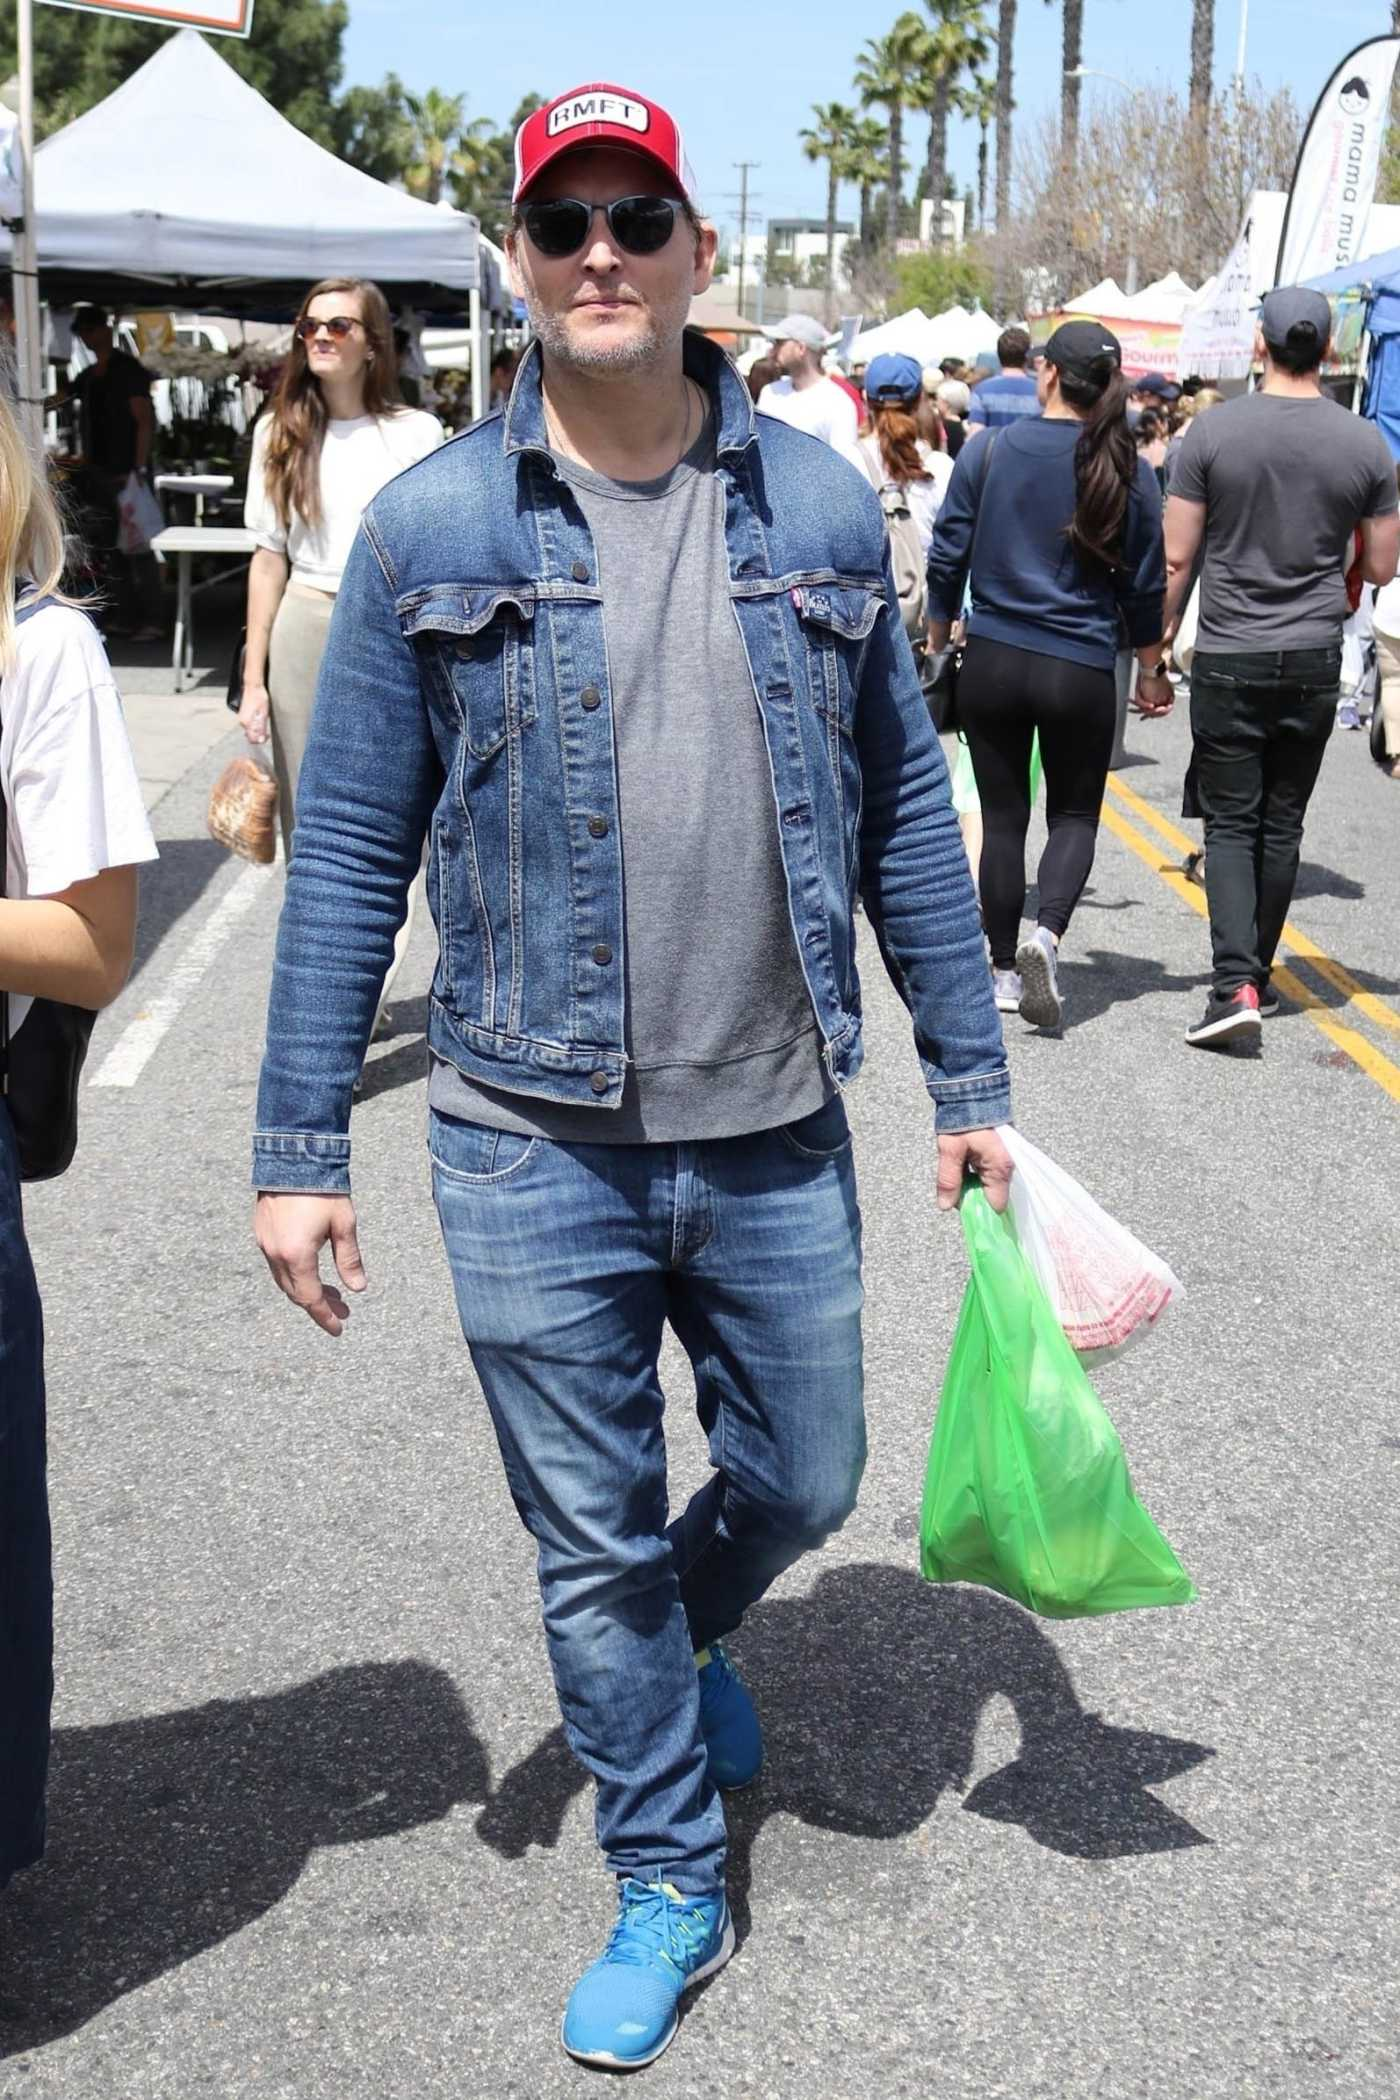 Peter Facinelli in a Blue Sneakers Was Seen Out at the Farmer's Market in Studio City 04/14/2019